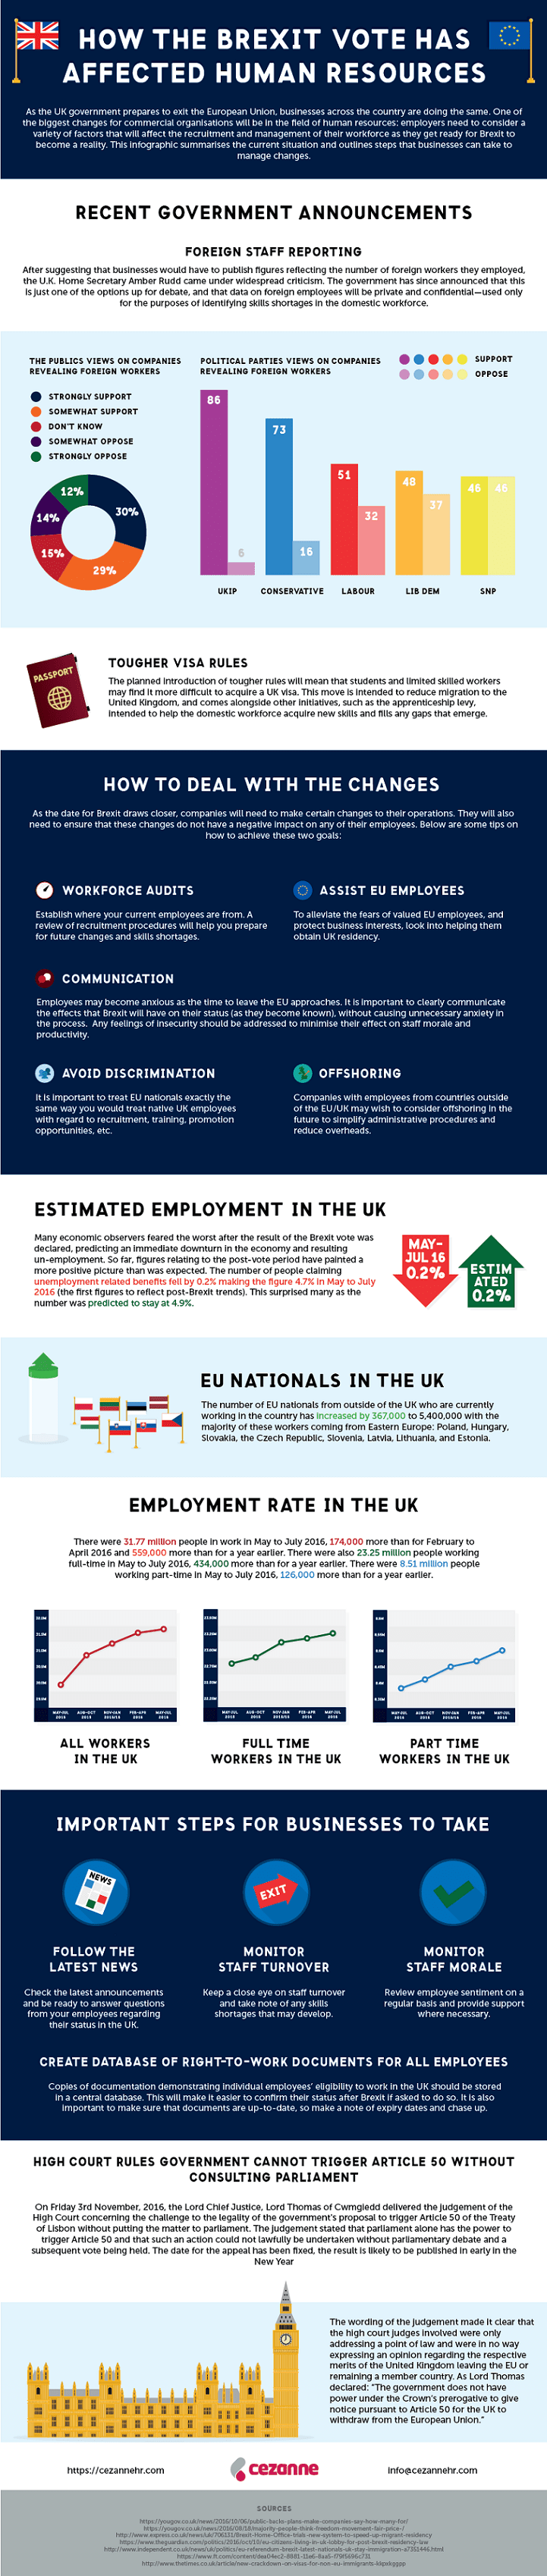 Infographic: How the Brexit Vote has Affected Human Resources